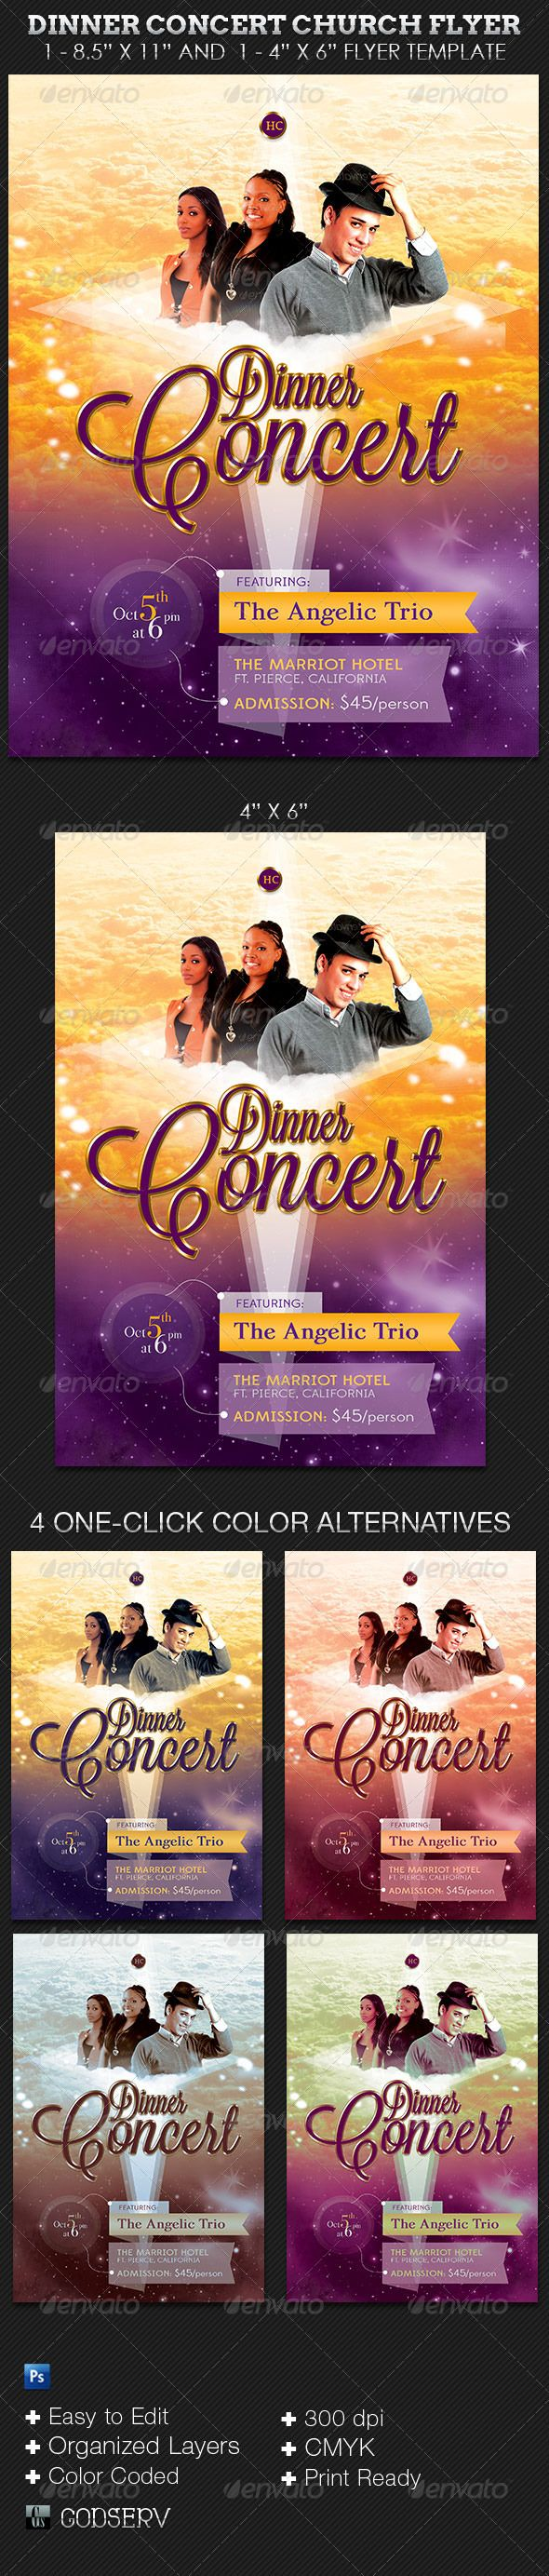 Dinner Concert Church Flyer Template  Flyer Template Template